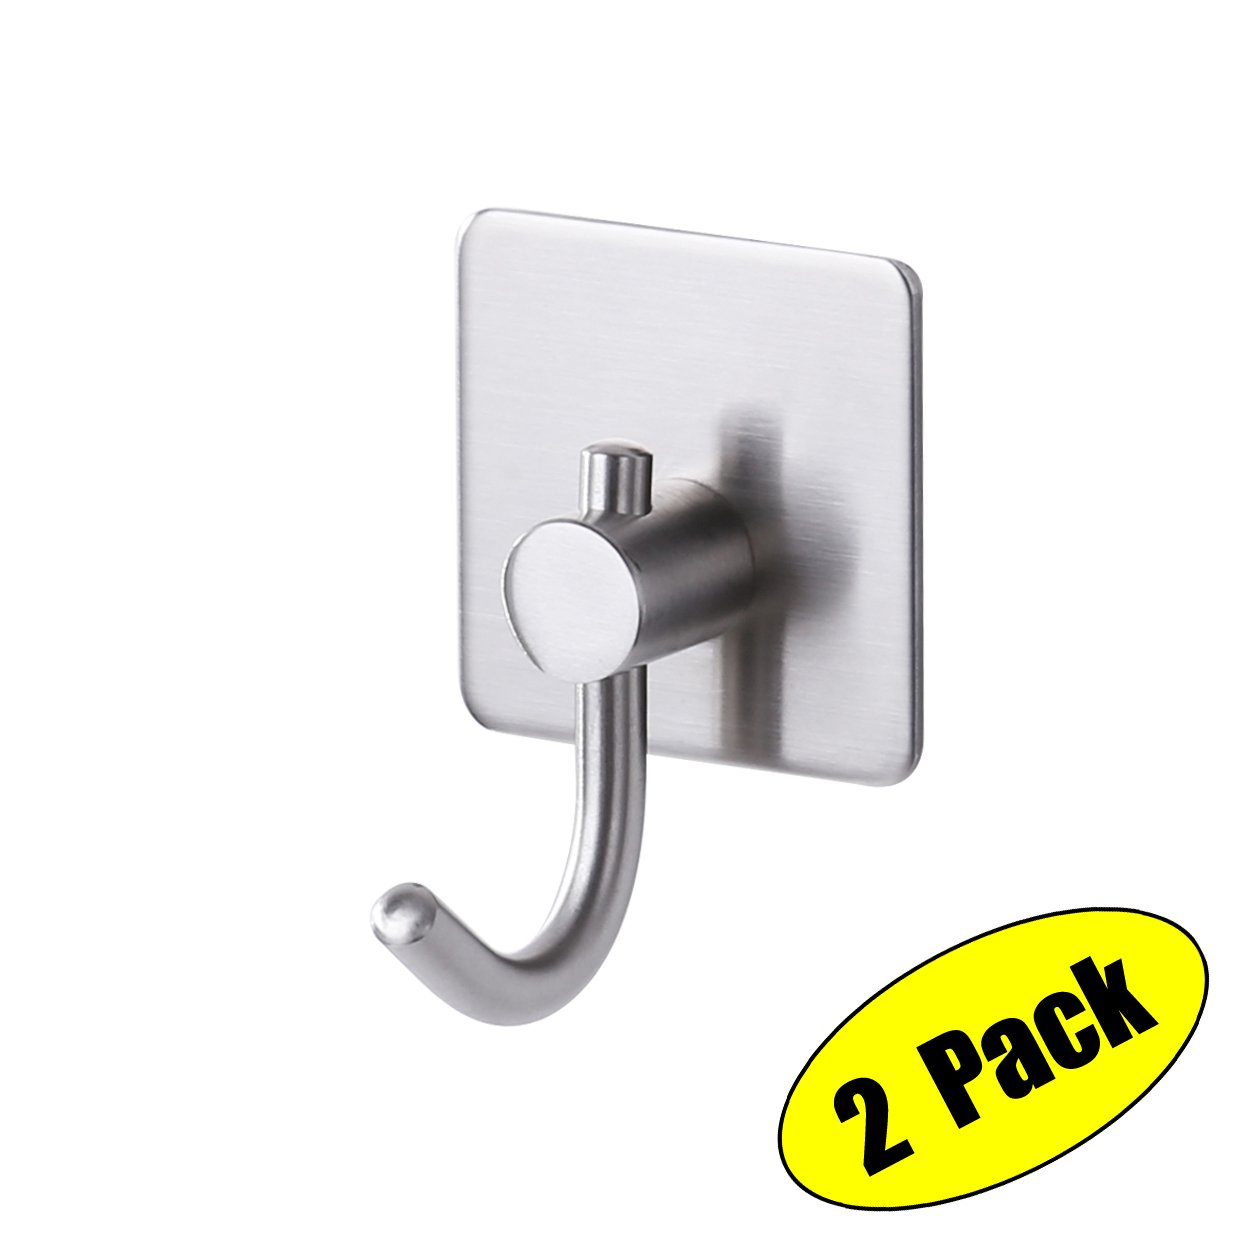 KES Wall Adhesive Hooks SUS 304 Stainless Steel with 3M Self-Adhesive Strip Sticky on Hanger for Bathroom Kitchen Brushed Finish Bath Towel Coat Robe Hook, 2 Pieces, A7068-2-P2 KES Home